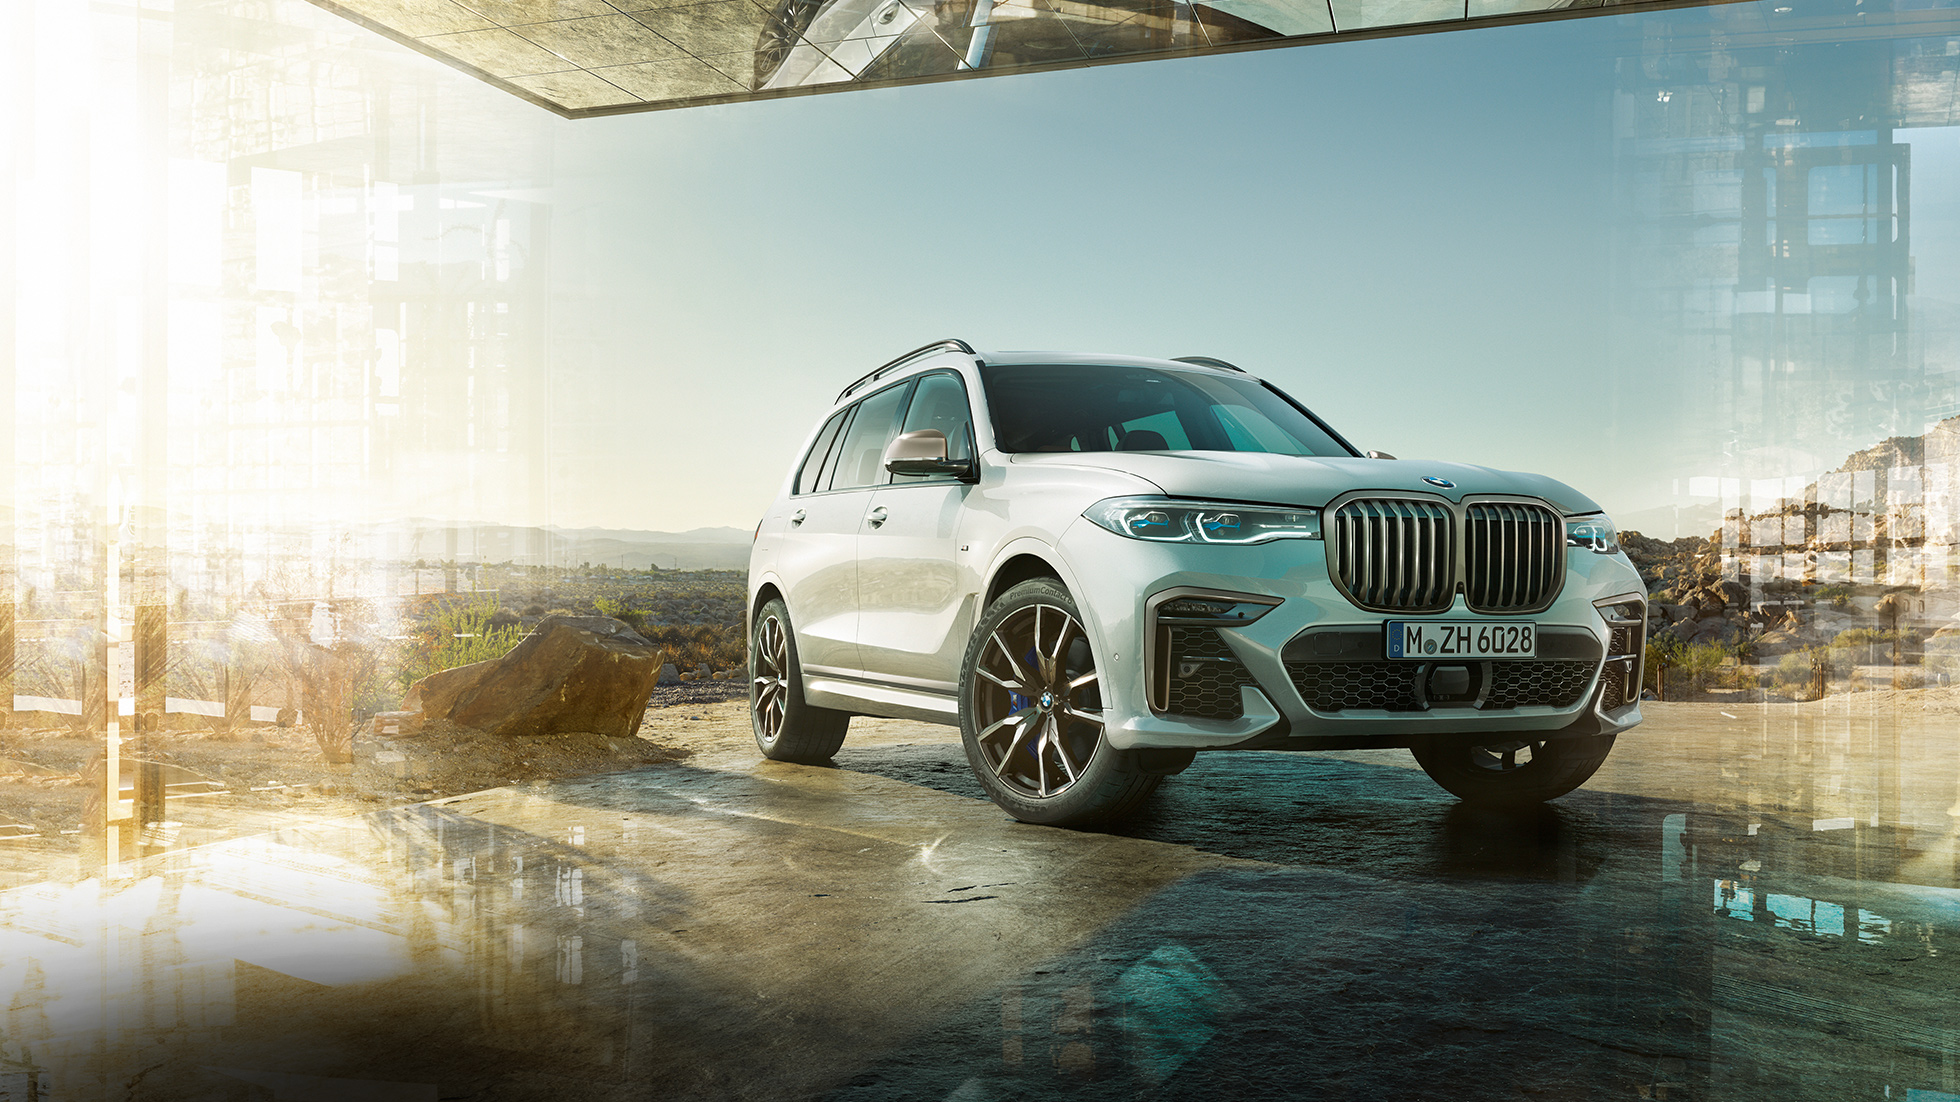 BMW X7 M50d: standing, white BMW X7 from the three-quarter front view